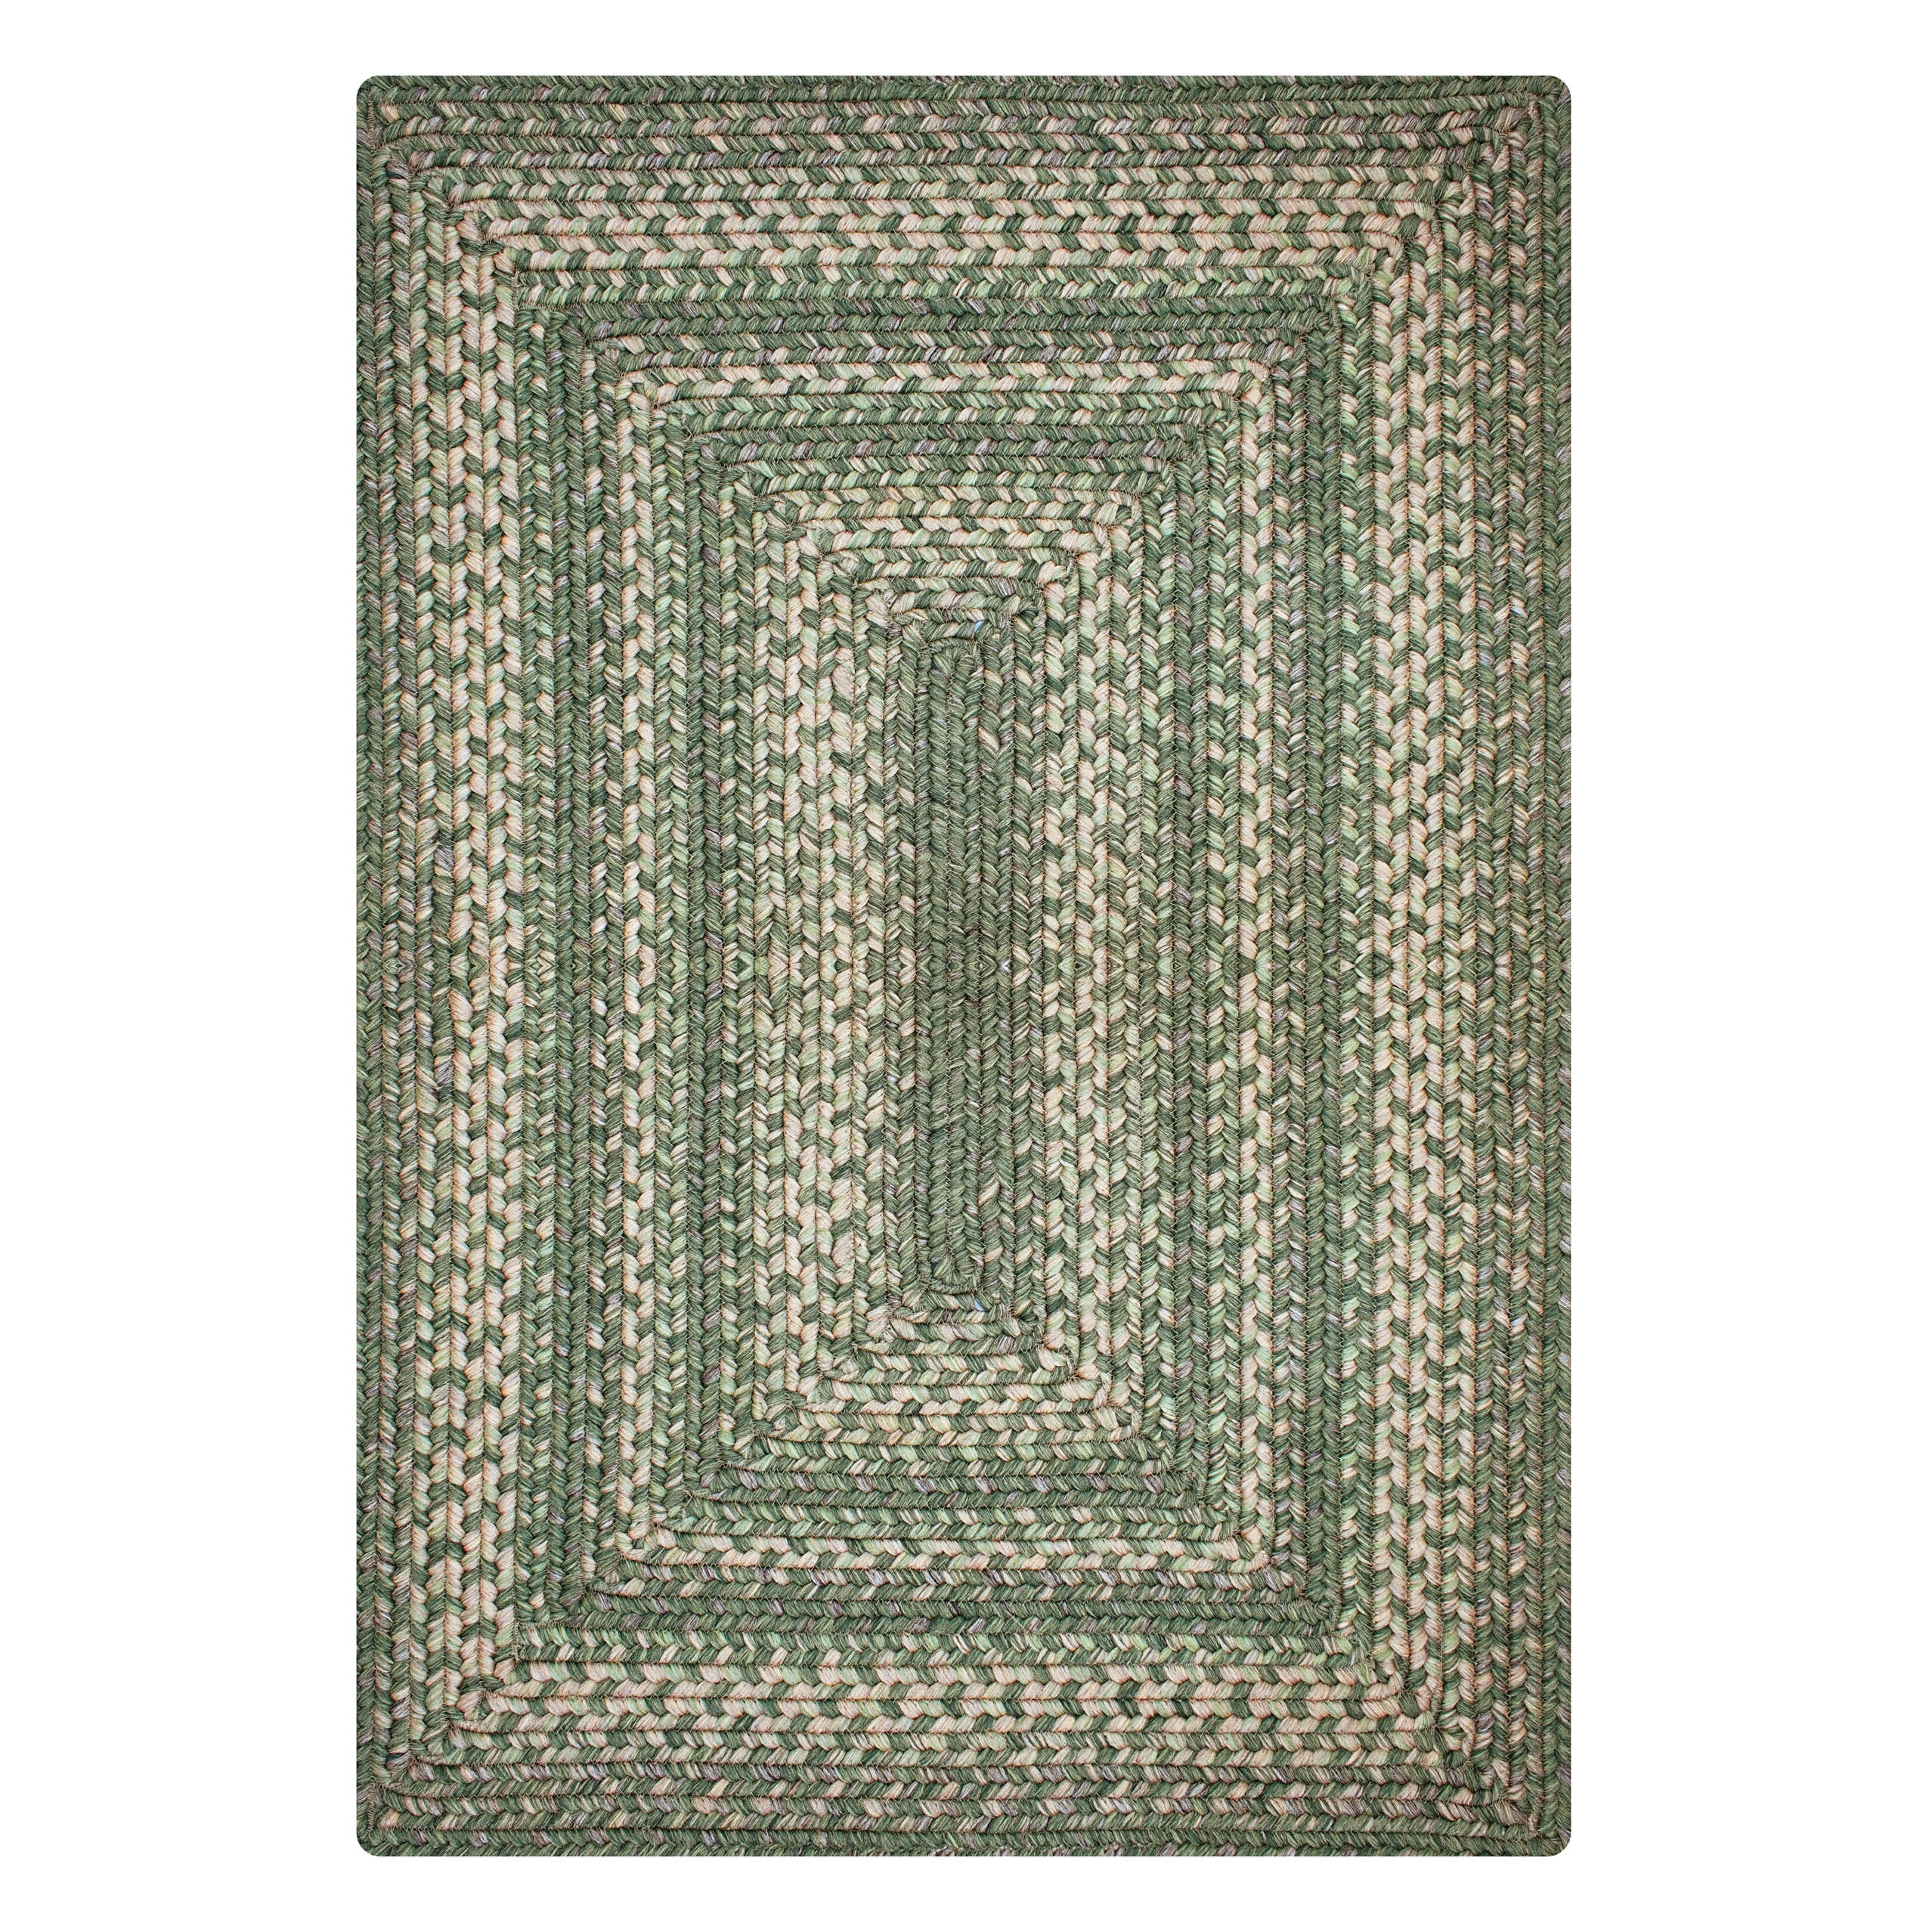 Hillside Green Ultra Durable Braided Rectangular Rugs